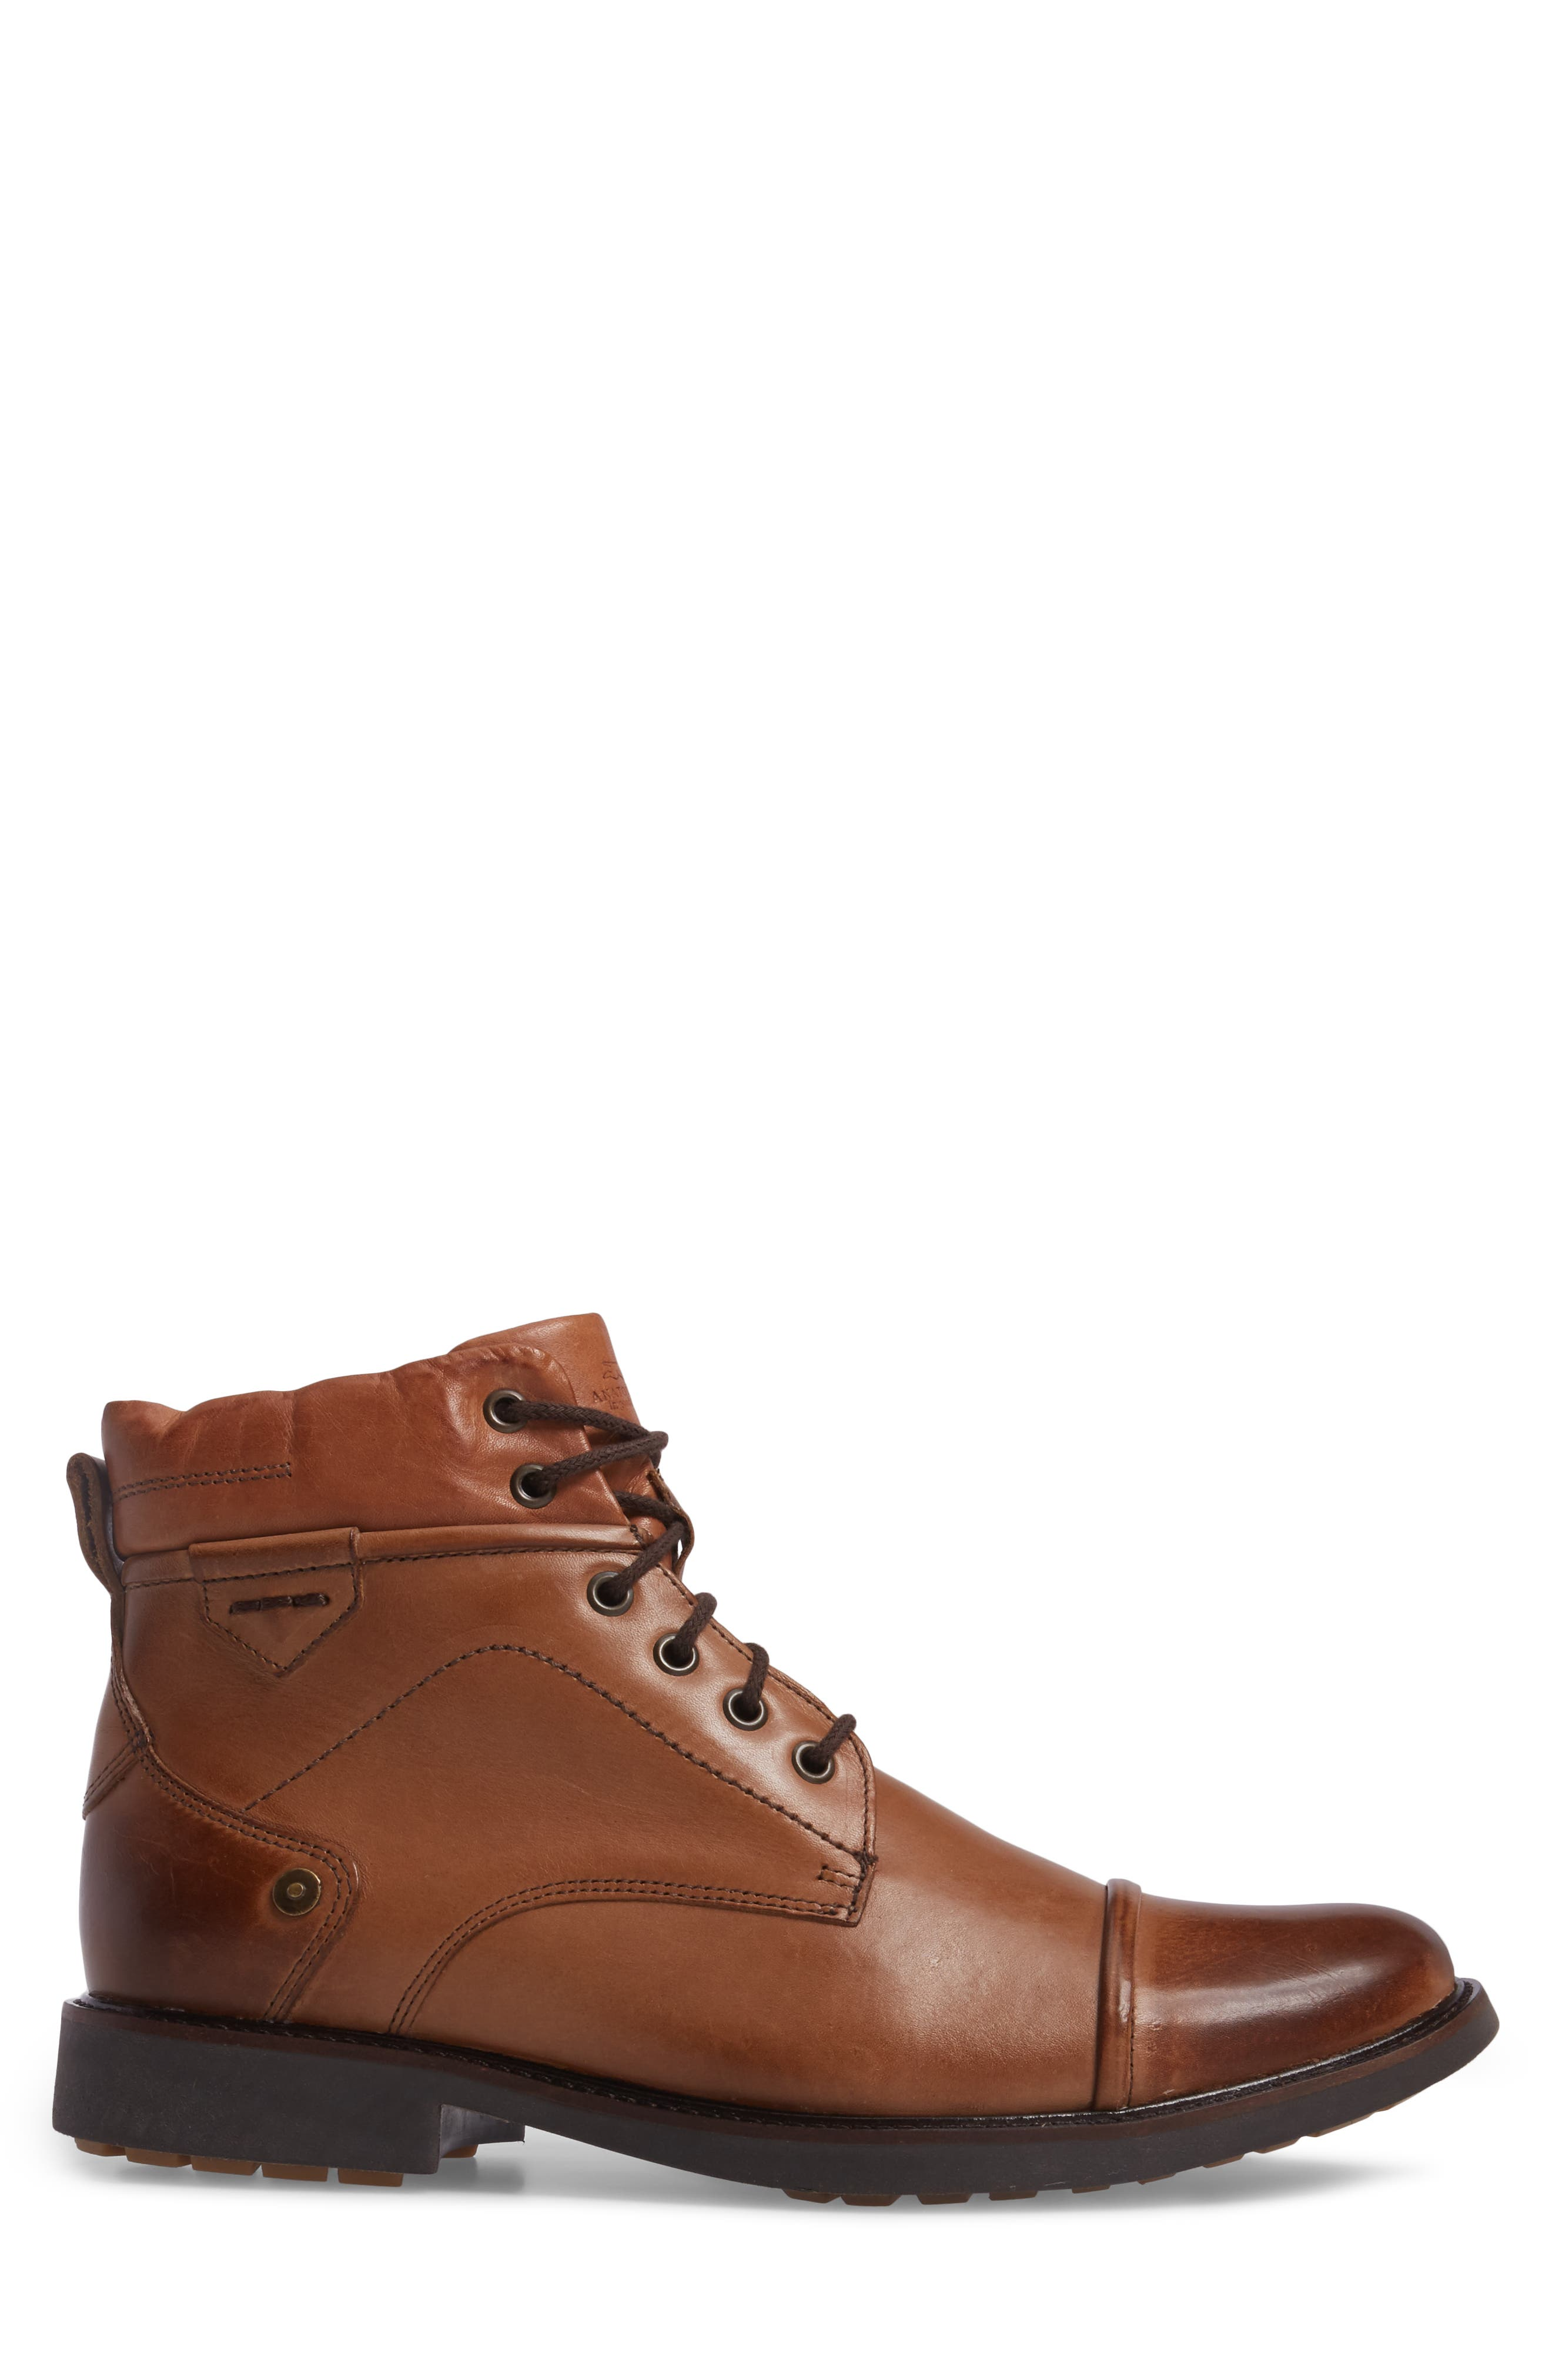 Samuel Cap Toe Boot,                             Alternate thumbnail 3, color,                             Touch Bronze Foxy